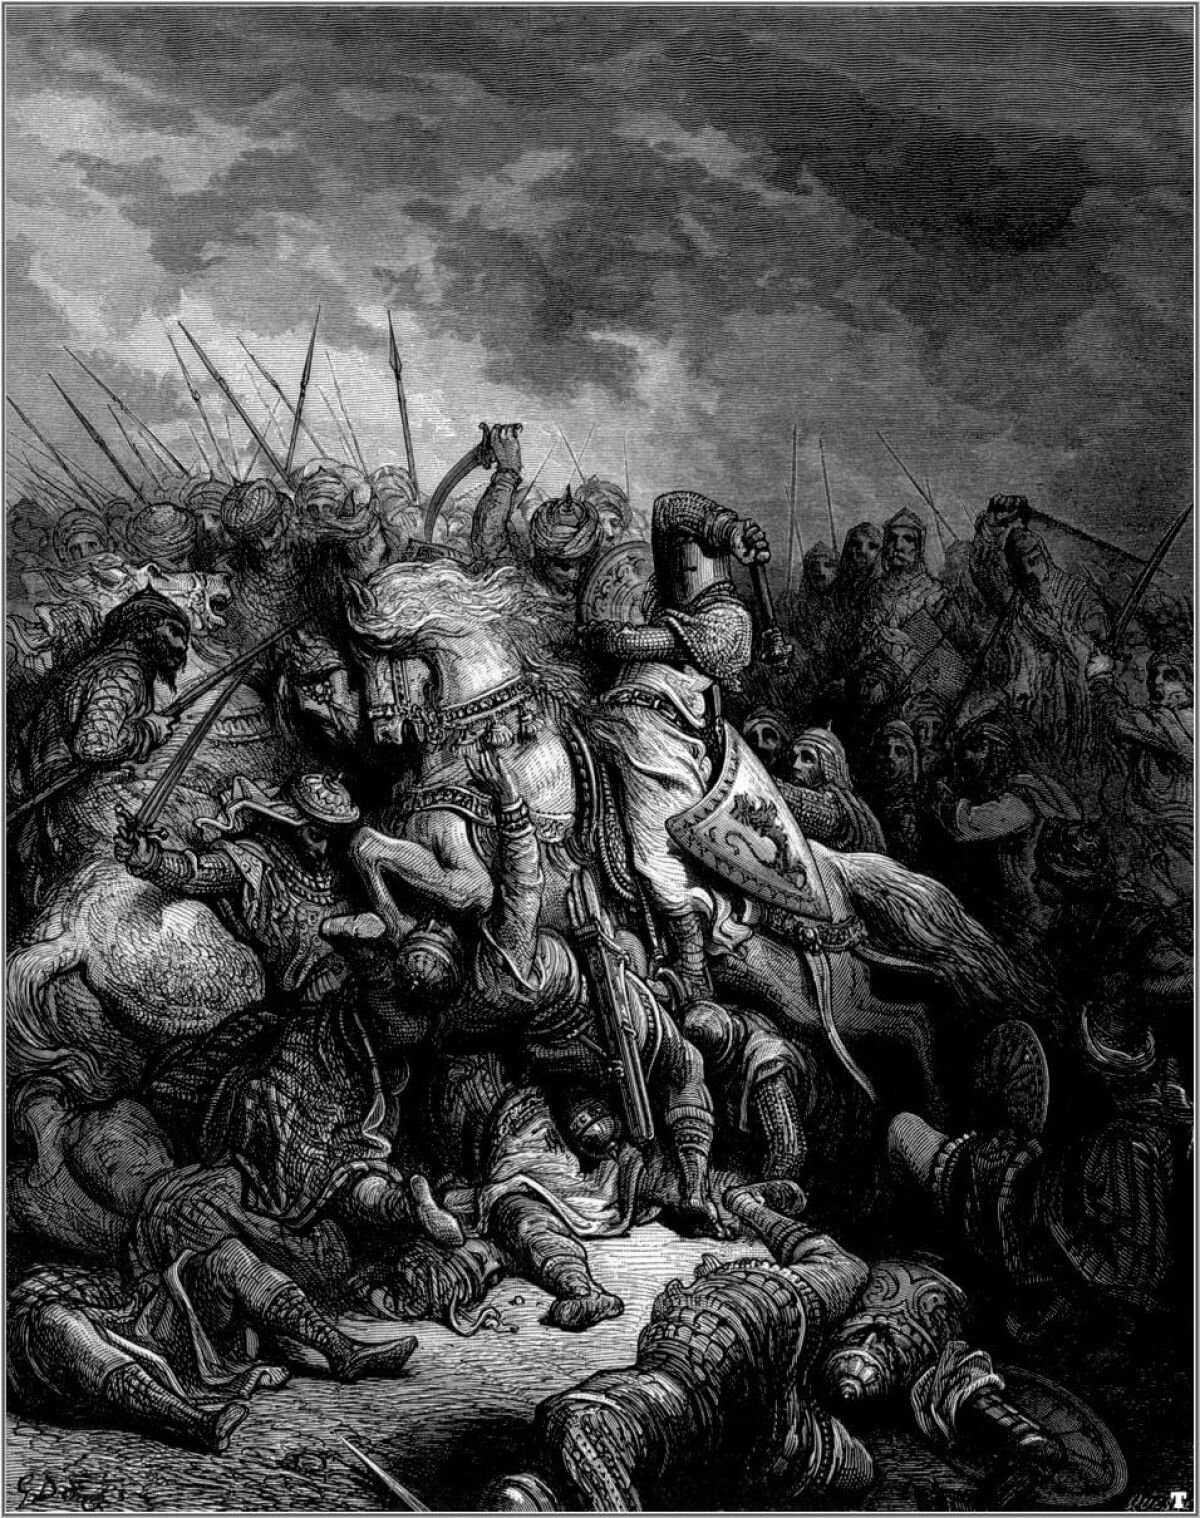 Gustave Doré - Richard and Salah ad-Din Battle of Arsuf